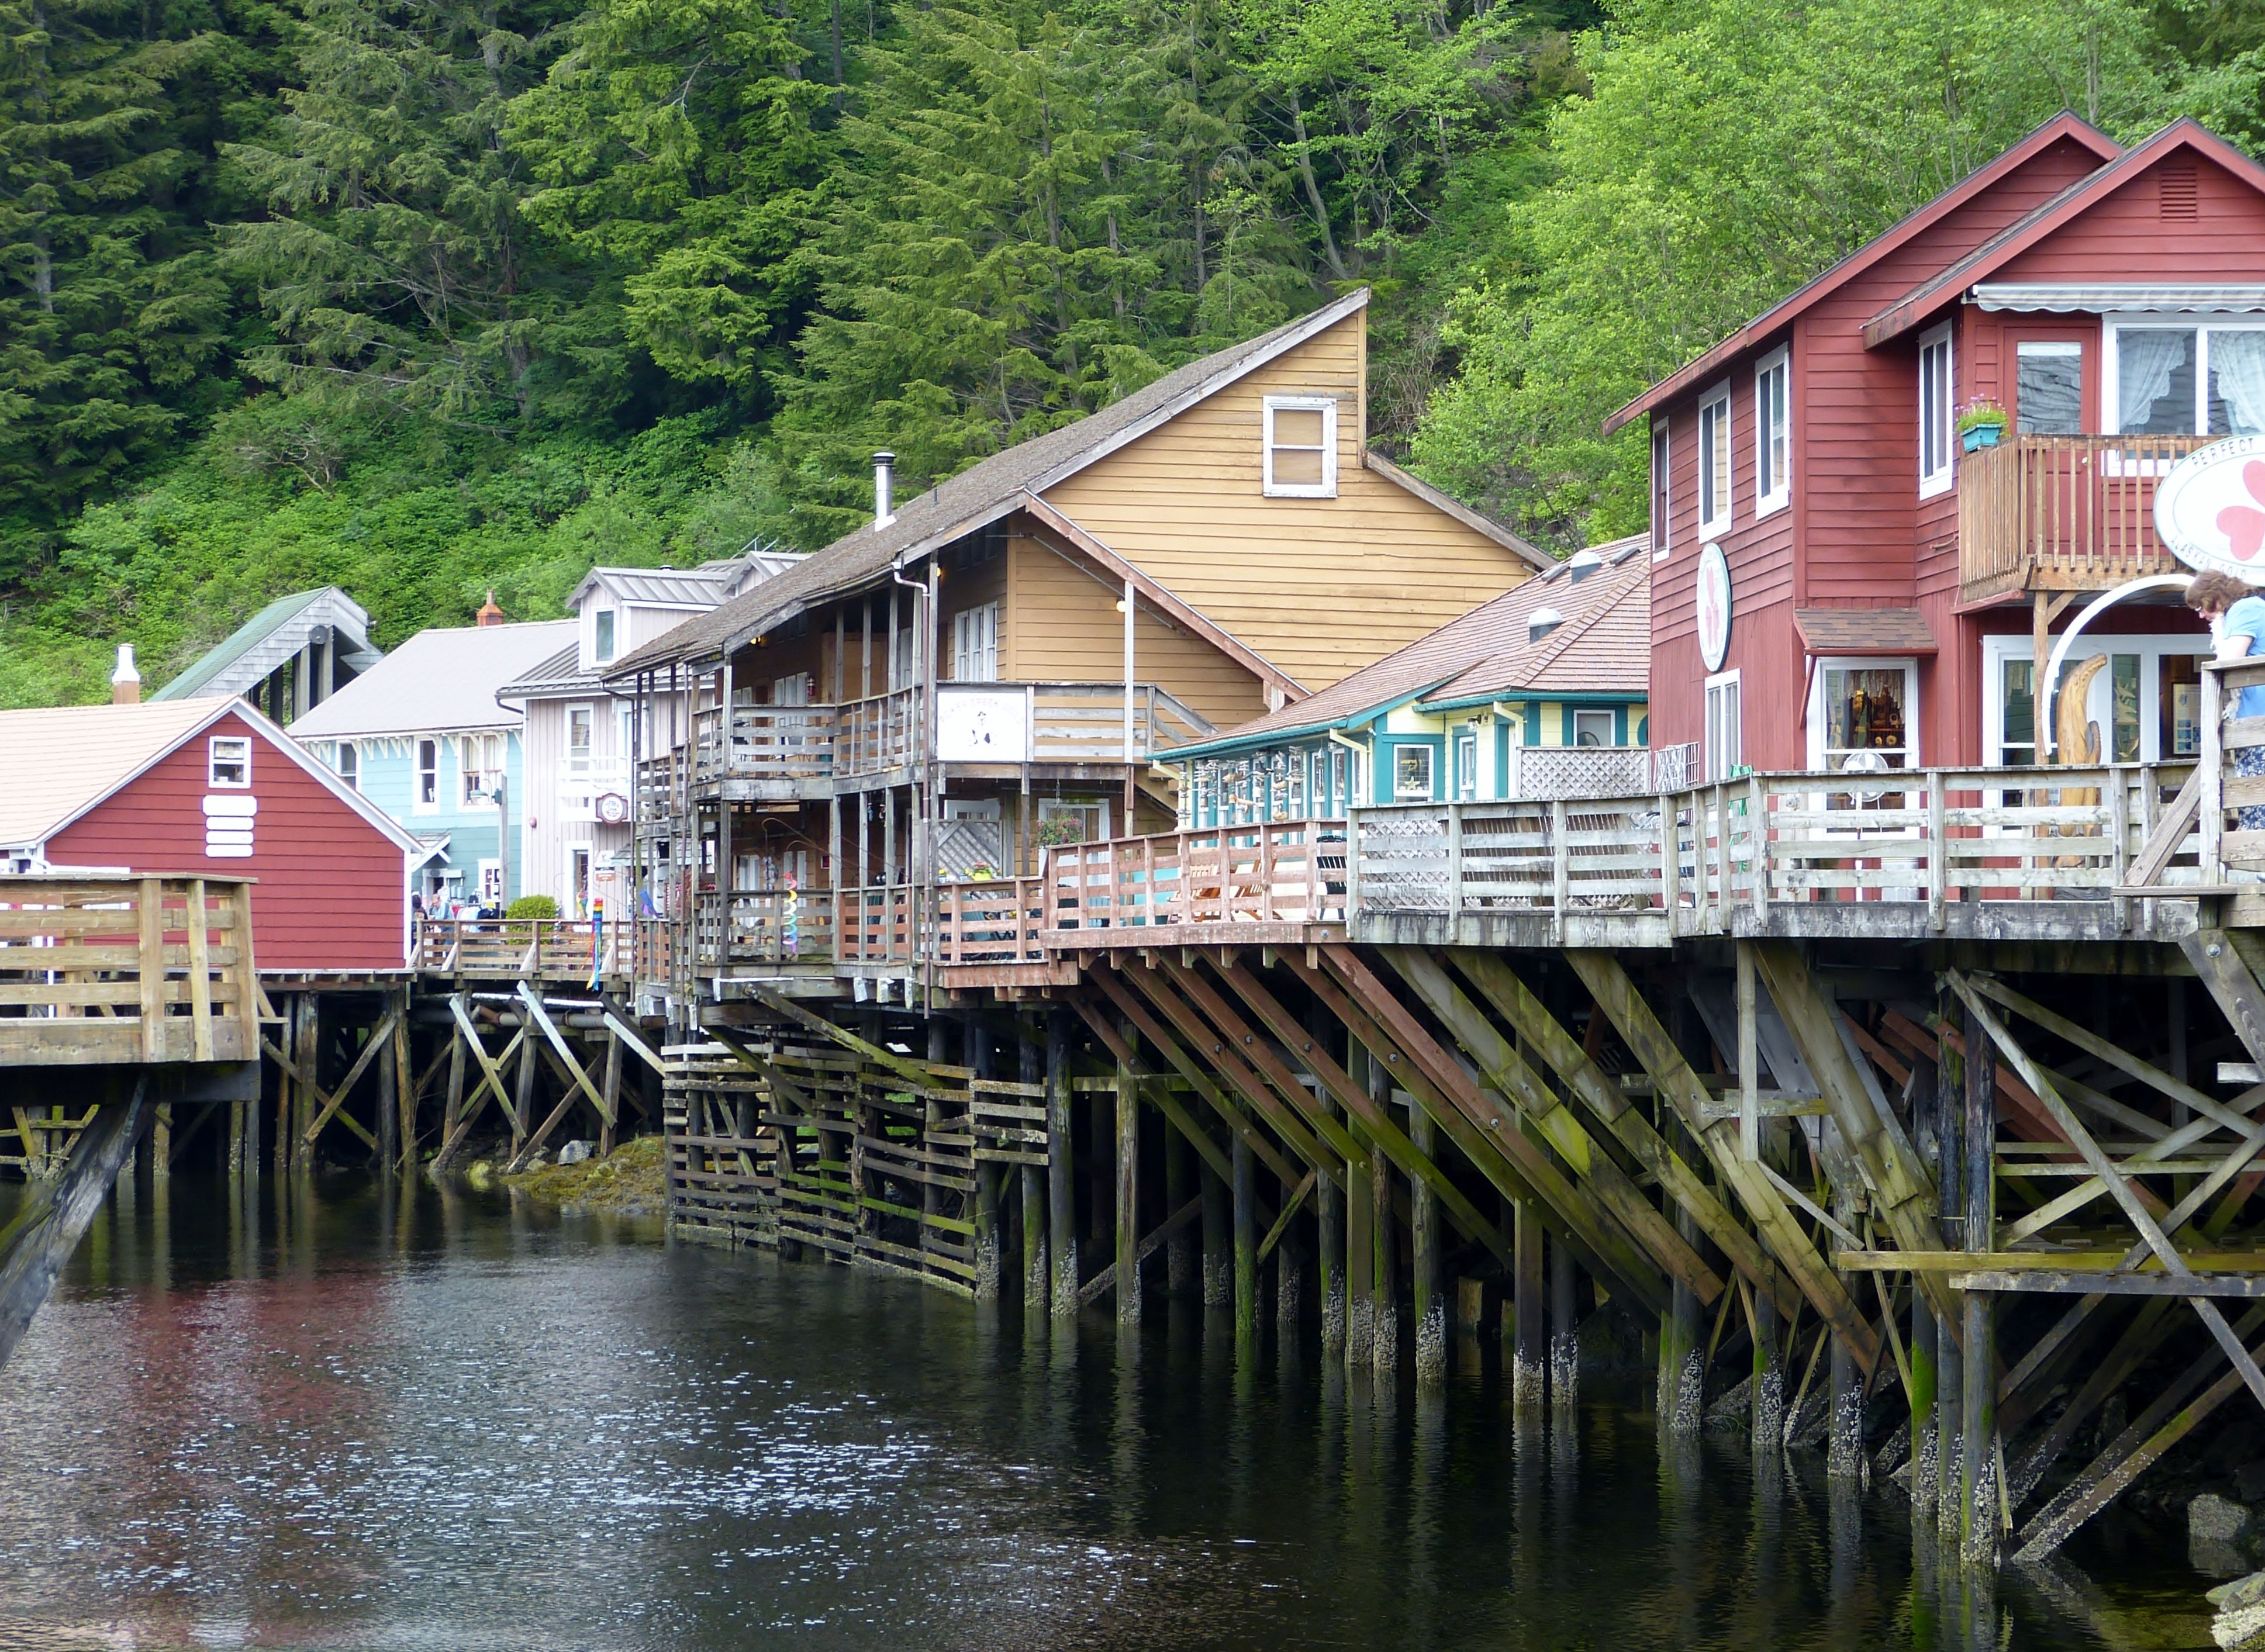 ketchikan men Find 1 listings related to red men improved order 12967988 in ketchikan on ypcom see reviews, photos, directions, phone numbers and more for red men improved order 12967988 locations in.